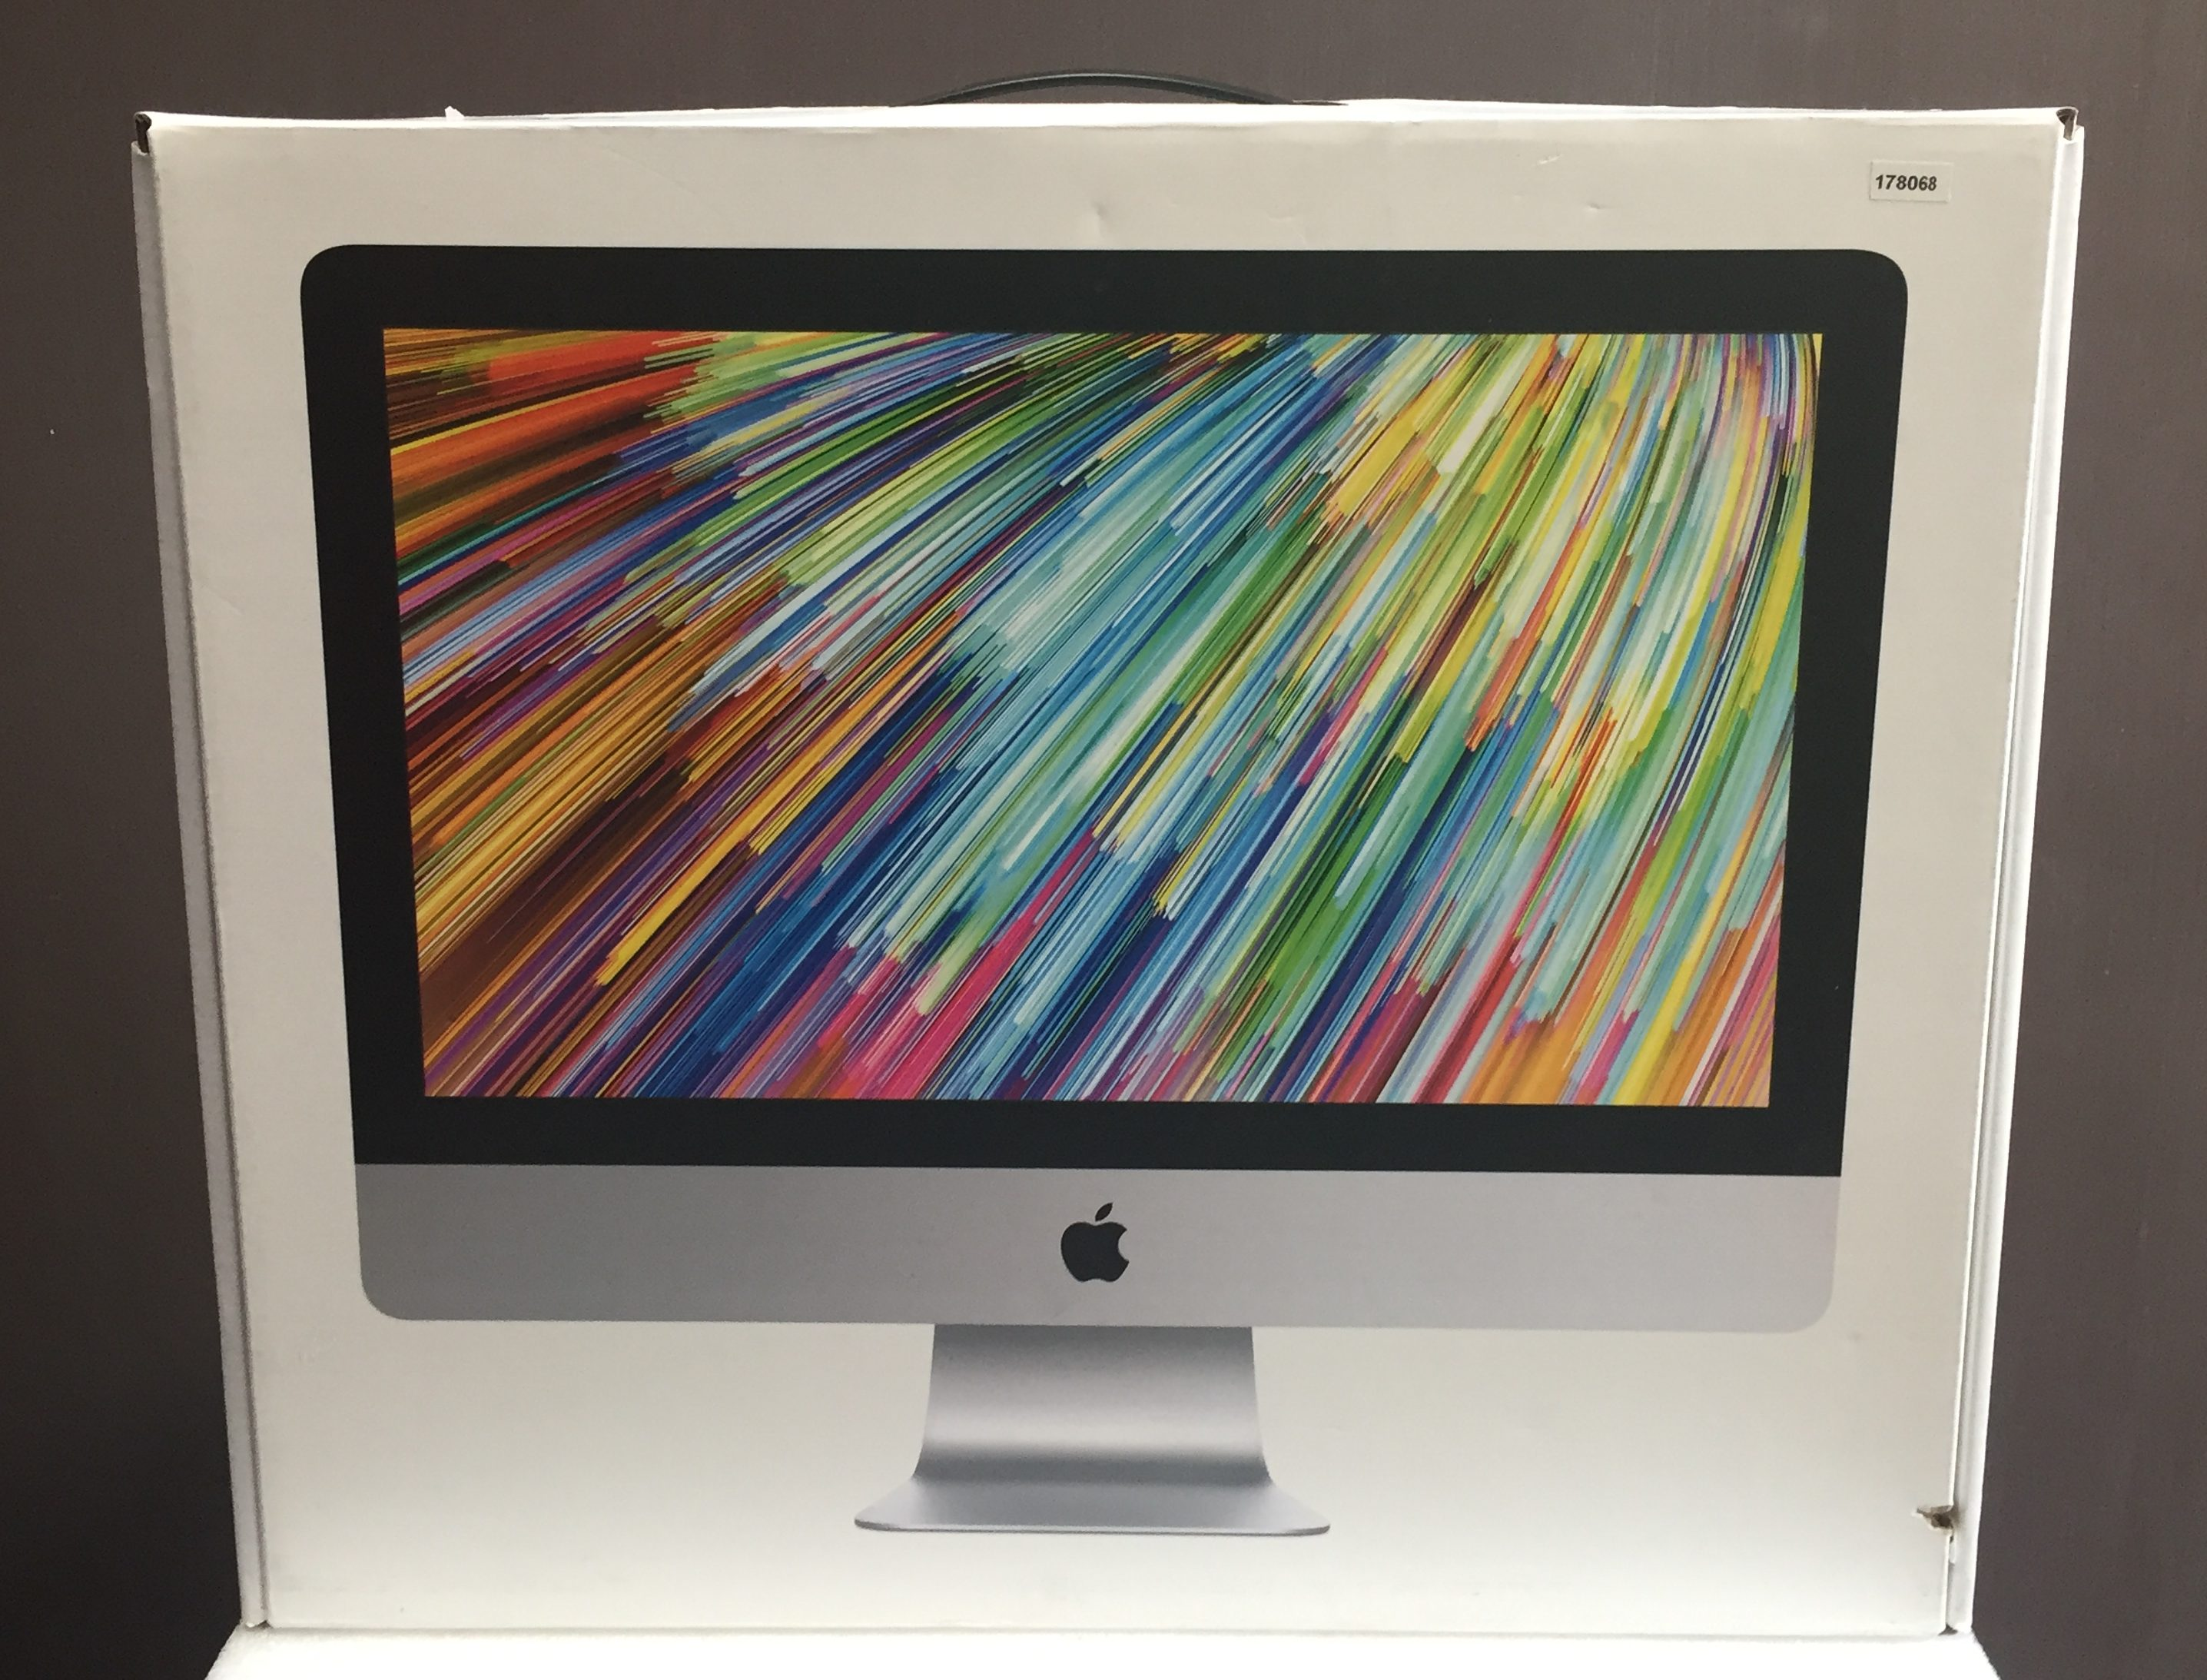 "iMac 21.5"" Late 2013 (Intel Quad-Core i5 2.7 GHz 8 GB RAM 1 TB HDD), Intel Quad-Core i5 2.7 GHz, 8 GB RAM, 1 TB HDD, imagen 9"